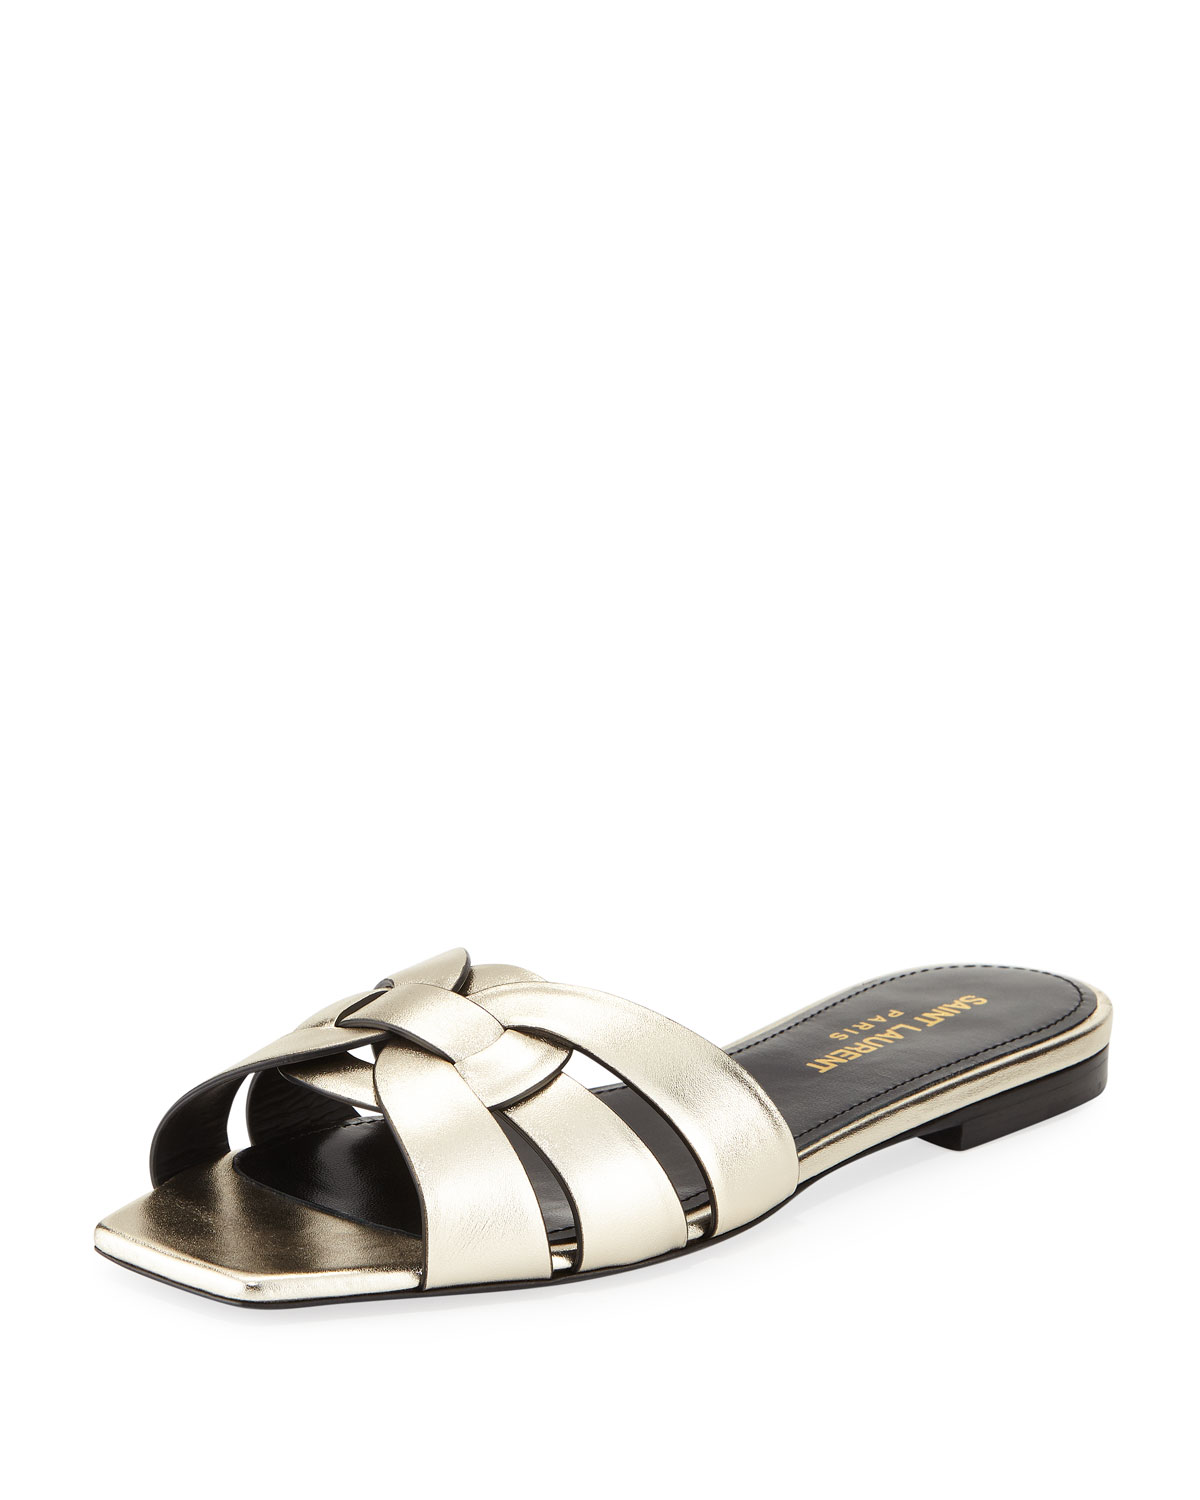 5e12fd80f1b Saint Laurent Nu Pieds Flat Metallic Leather Slide Sandal